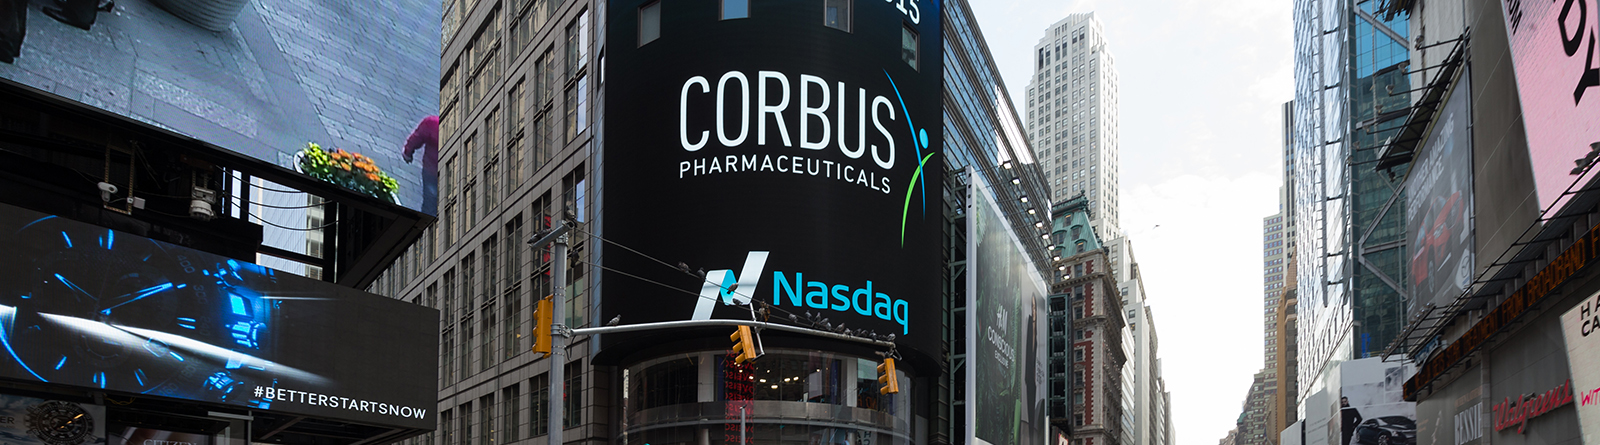 Corbus Pharmaceuticals Reports 2016 Third Quarter Financial Results and Provides Business Update Banner